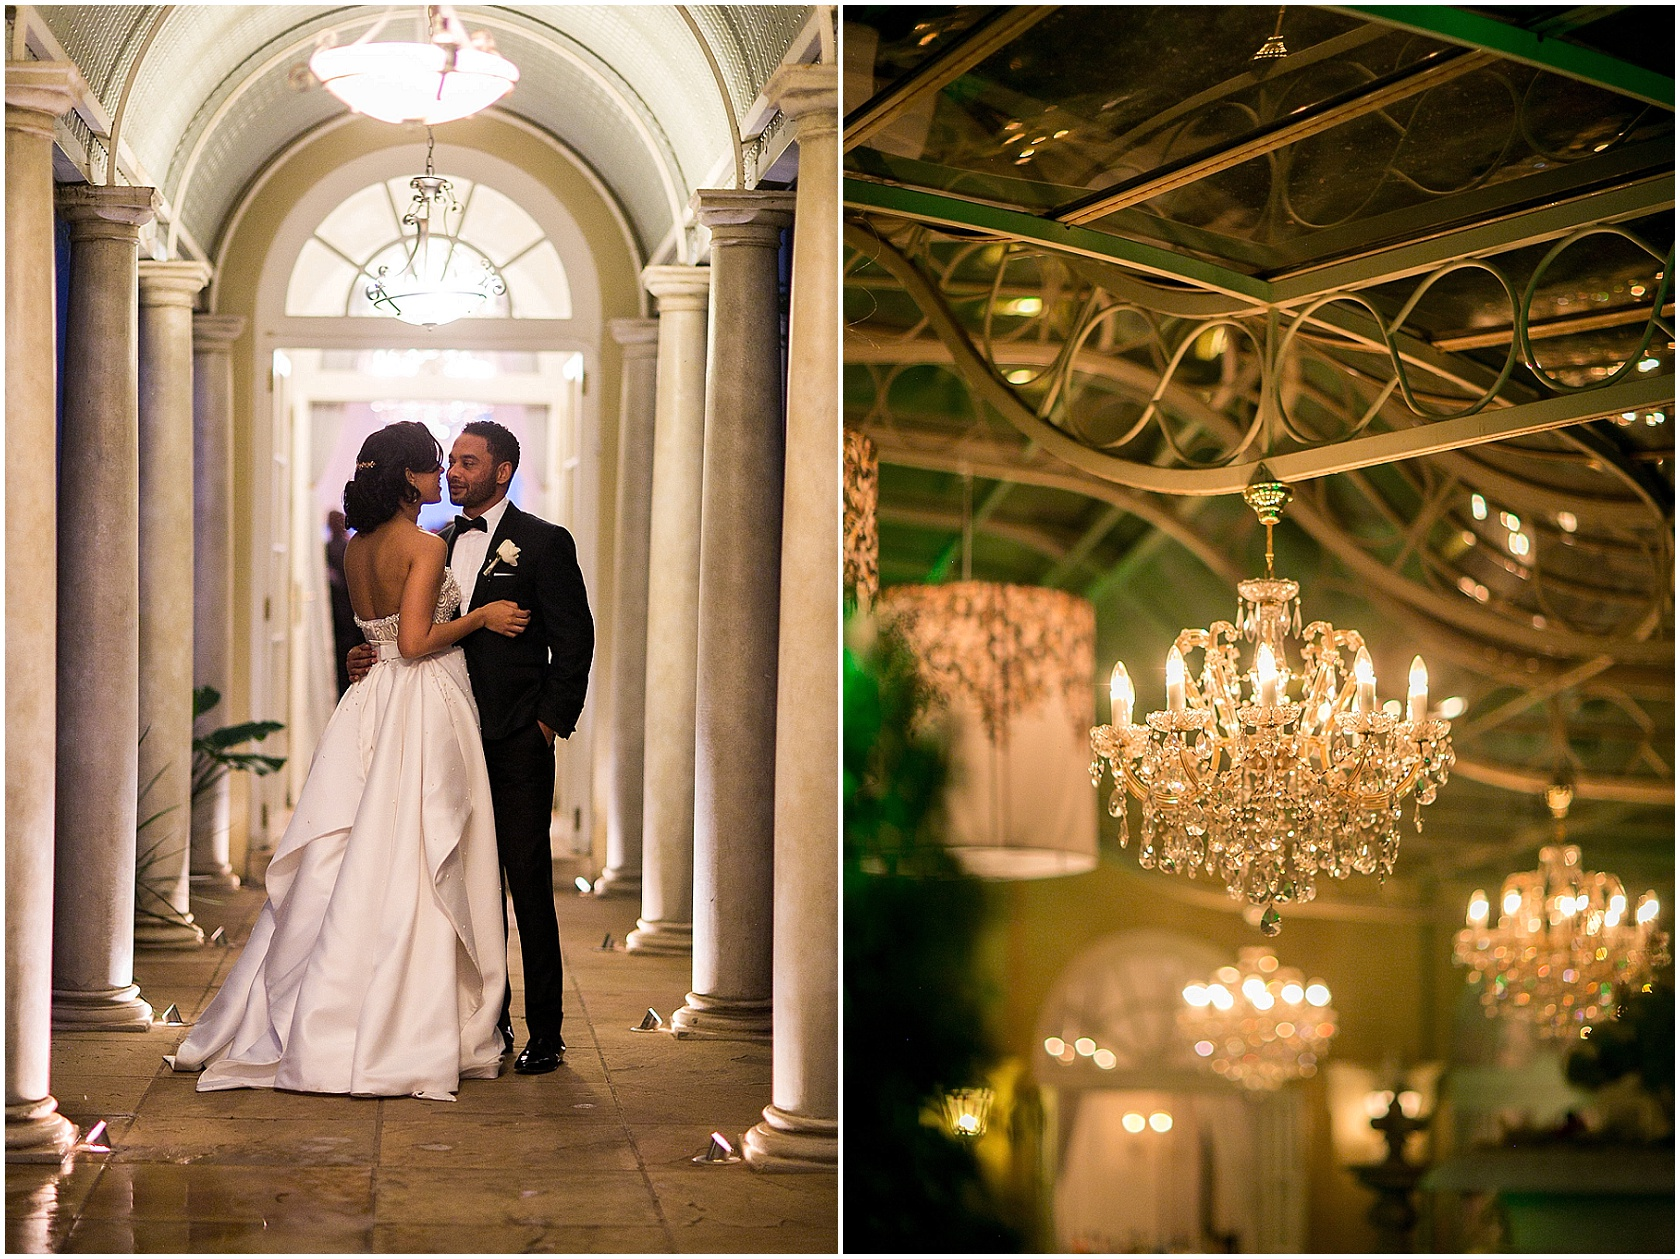 Elegant Wedding setting - Sarah and Jehan Mackay